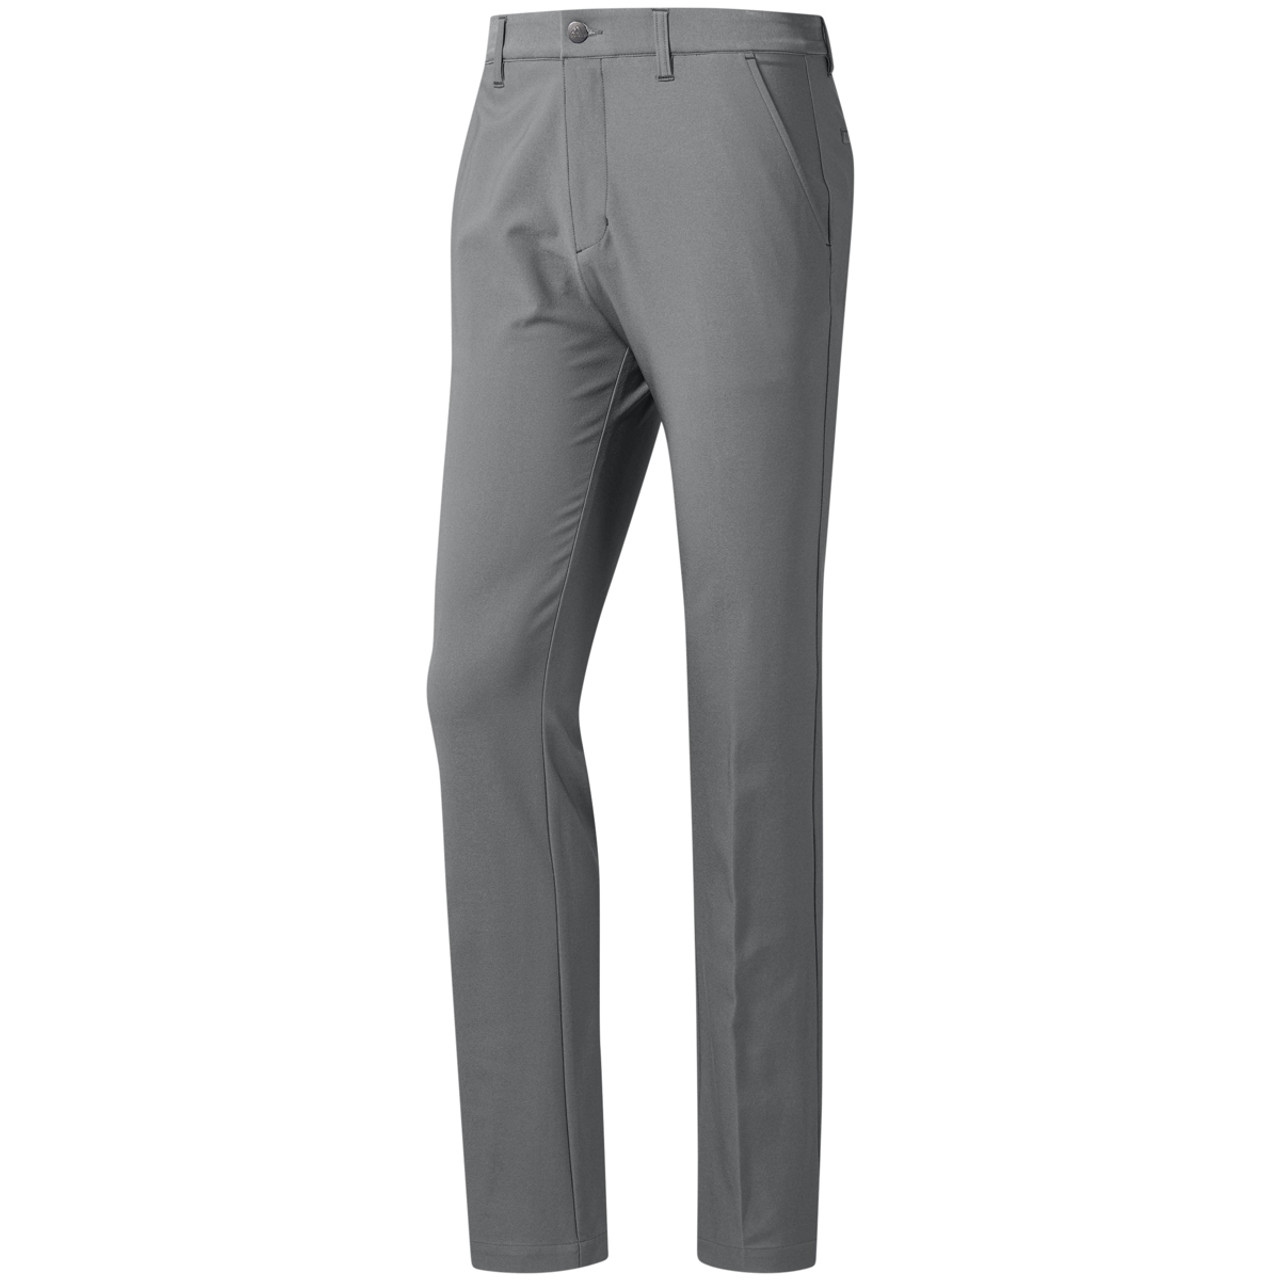 Adidas Ultimate 365 3-Stripe Classic Pants - Grey Two